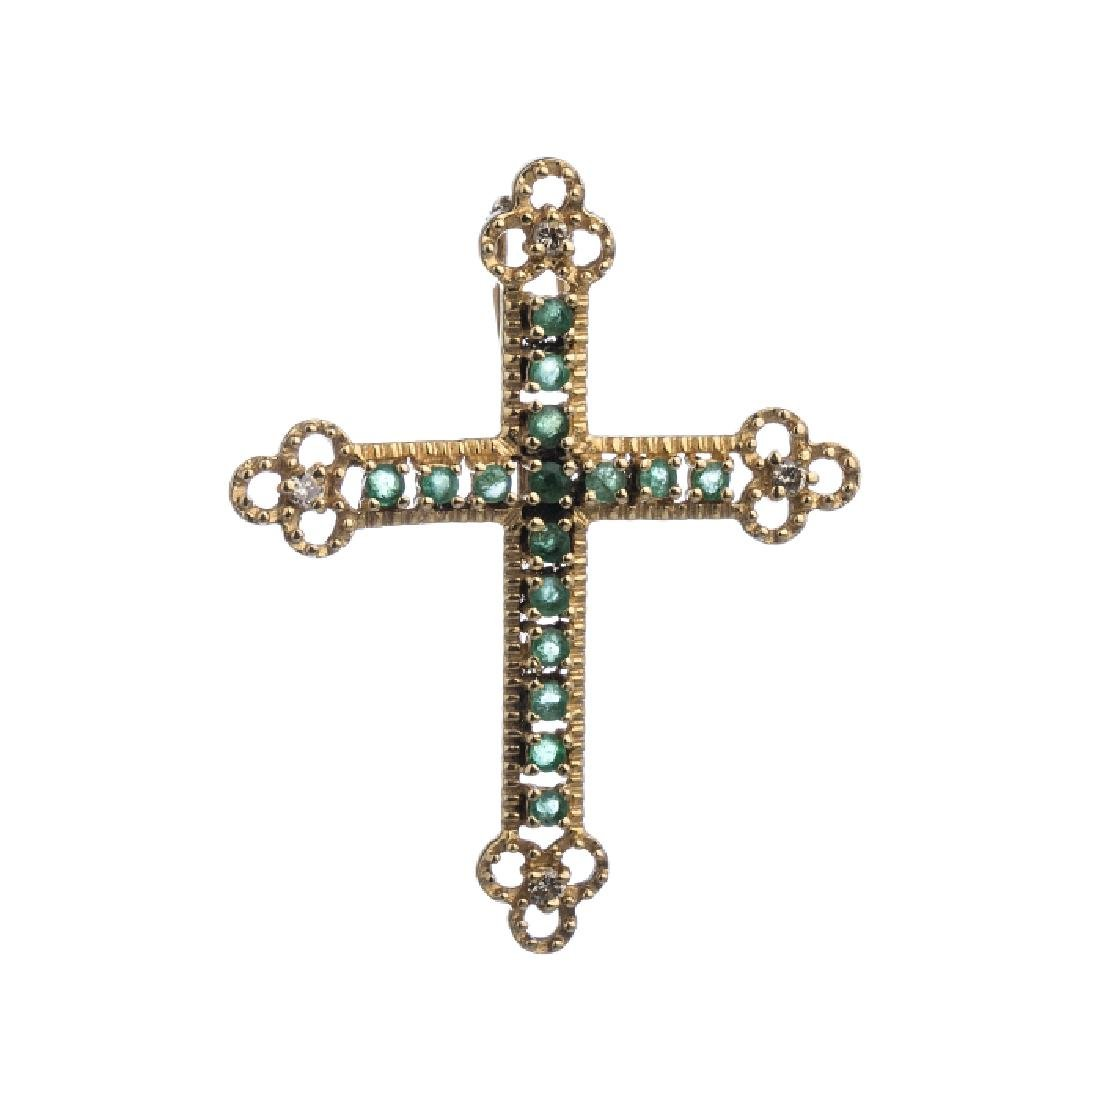 Gold cross with diamonds and emeralds